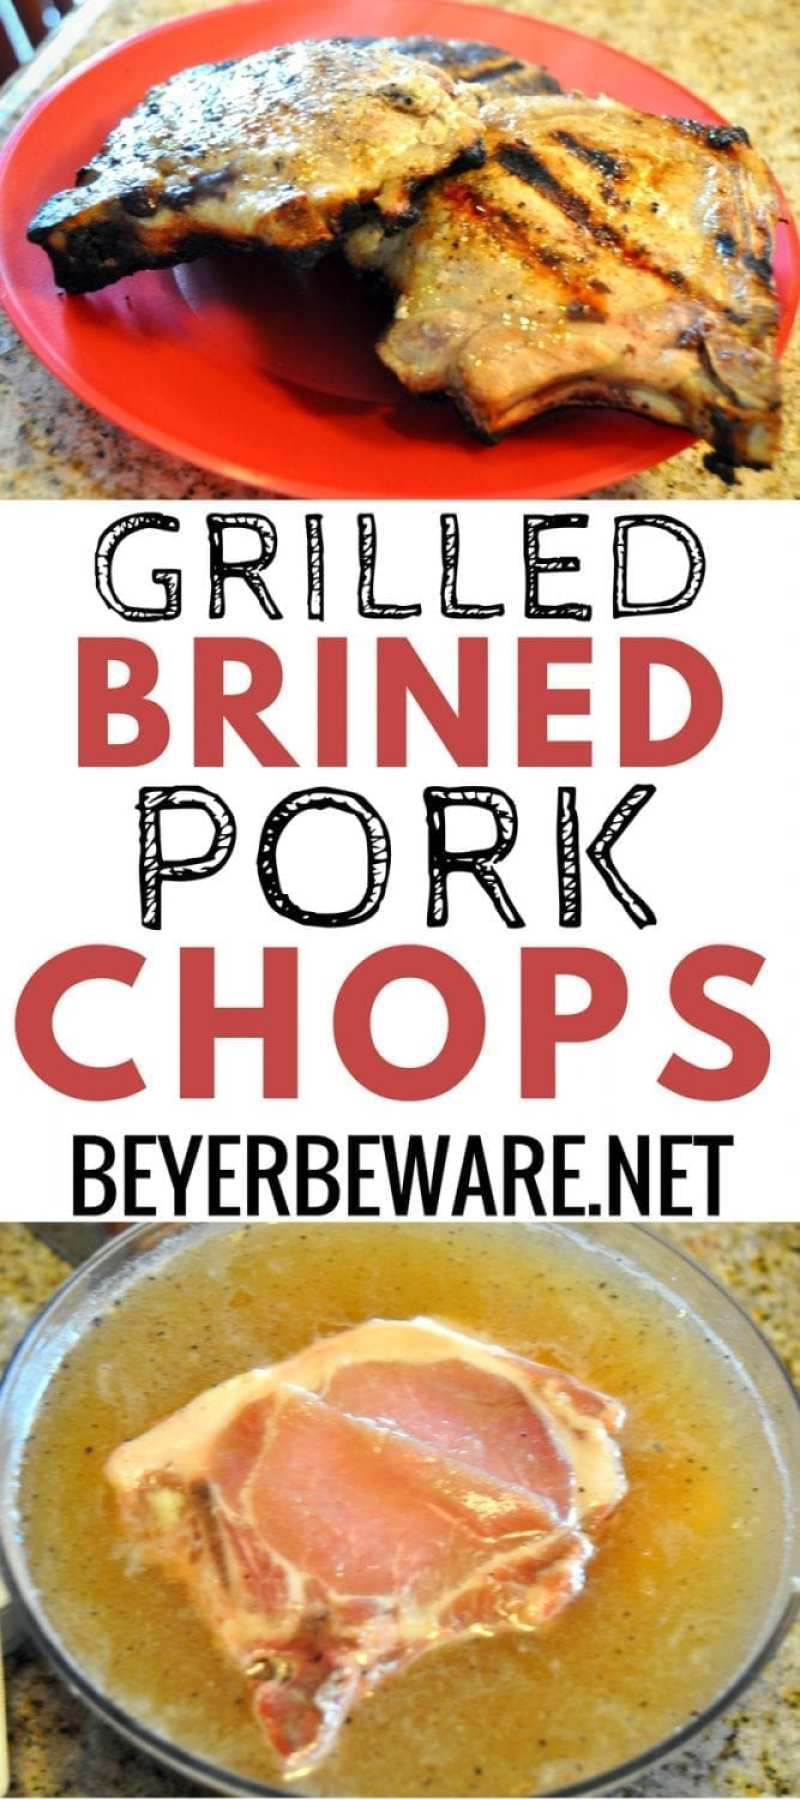 One way to make sure you have juicy grilled pork chops is to make grilled brined pork chops. OH, and cooking just to 150 degrees before letting the pork chops rest.